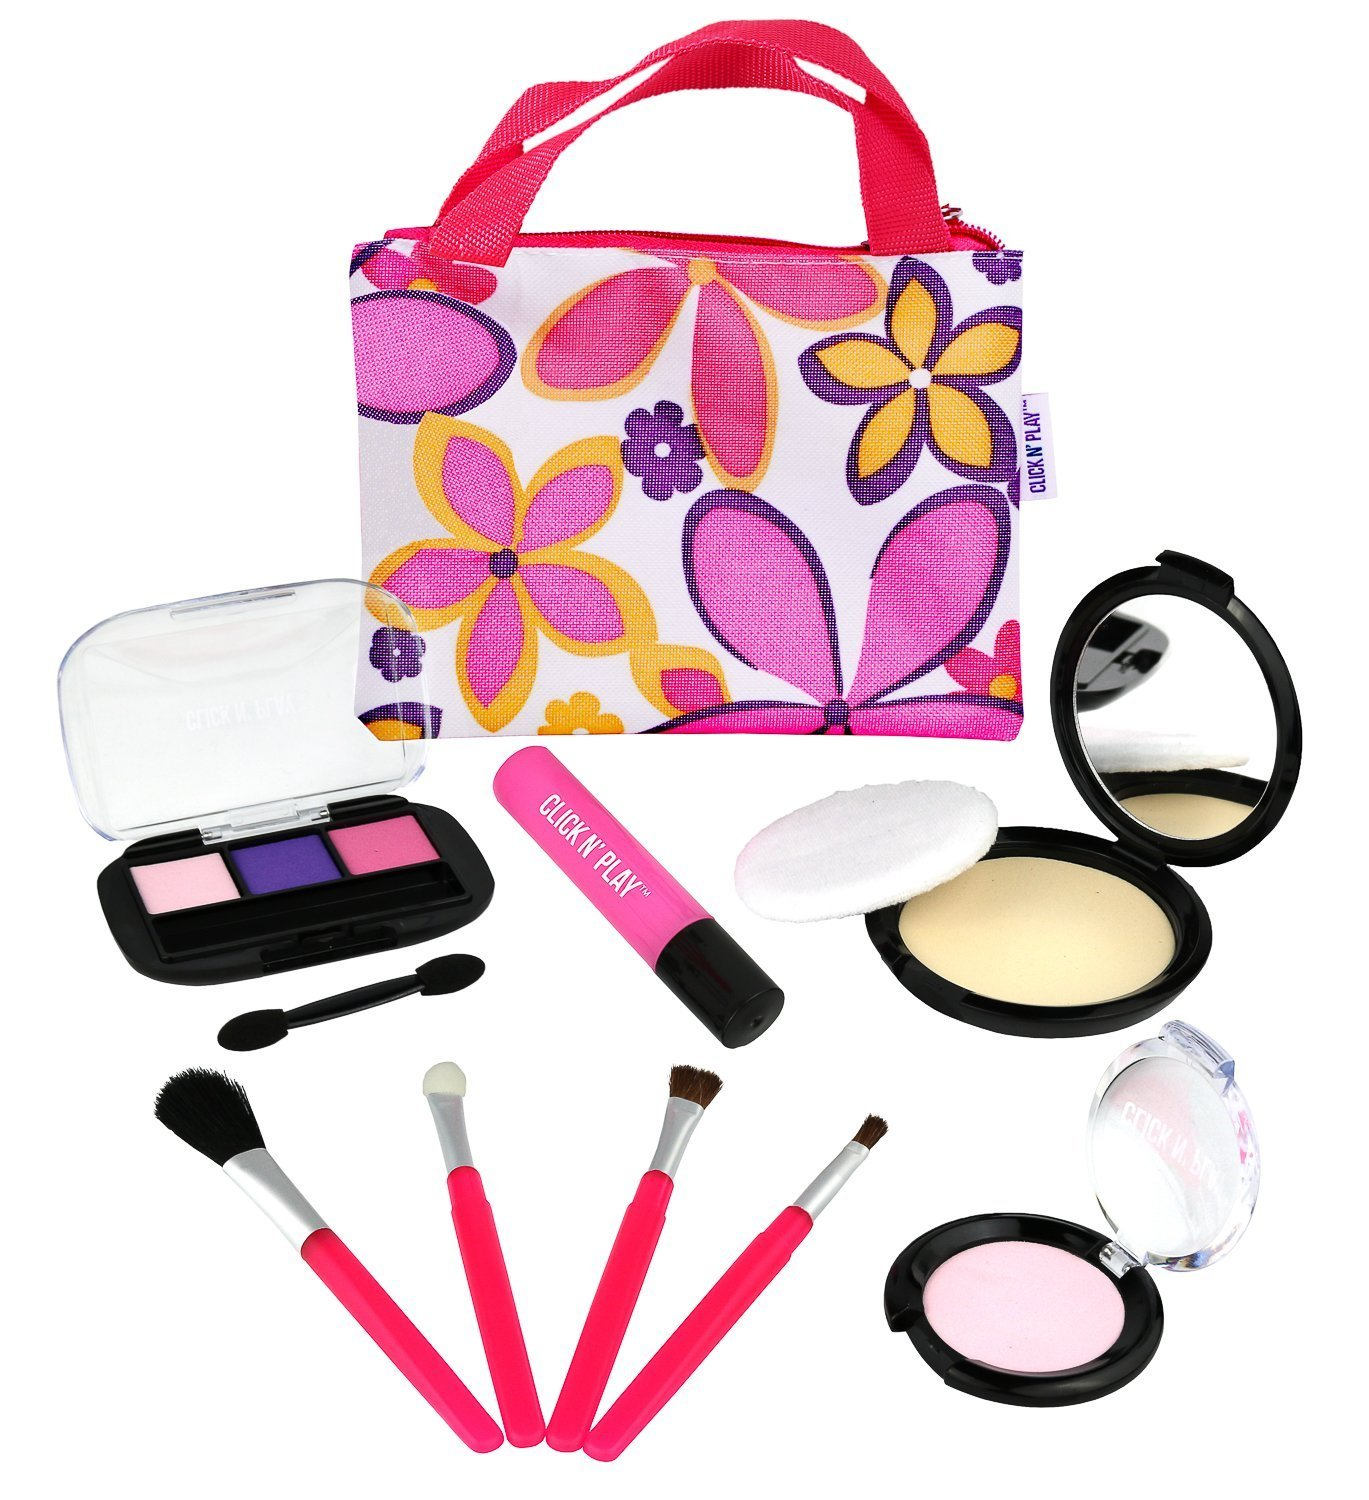 Click N' Play Pretend Play Cosmetic and Makeup Set with Floral Tote Bag by Click N' Play